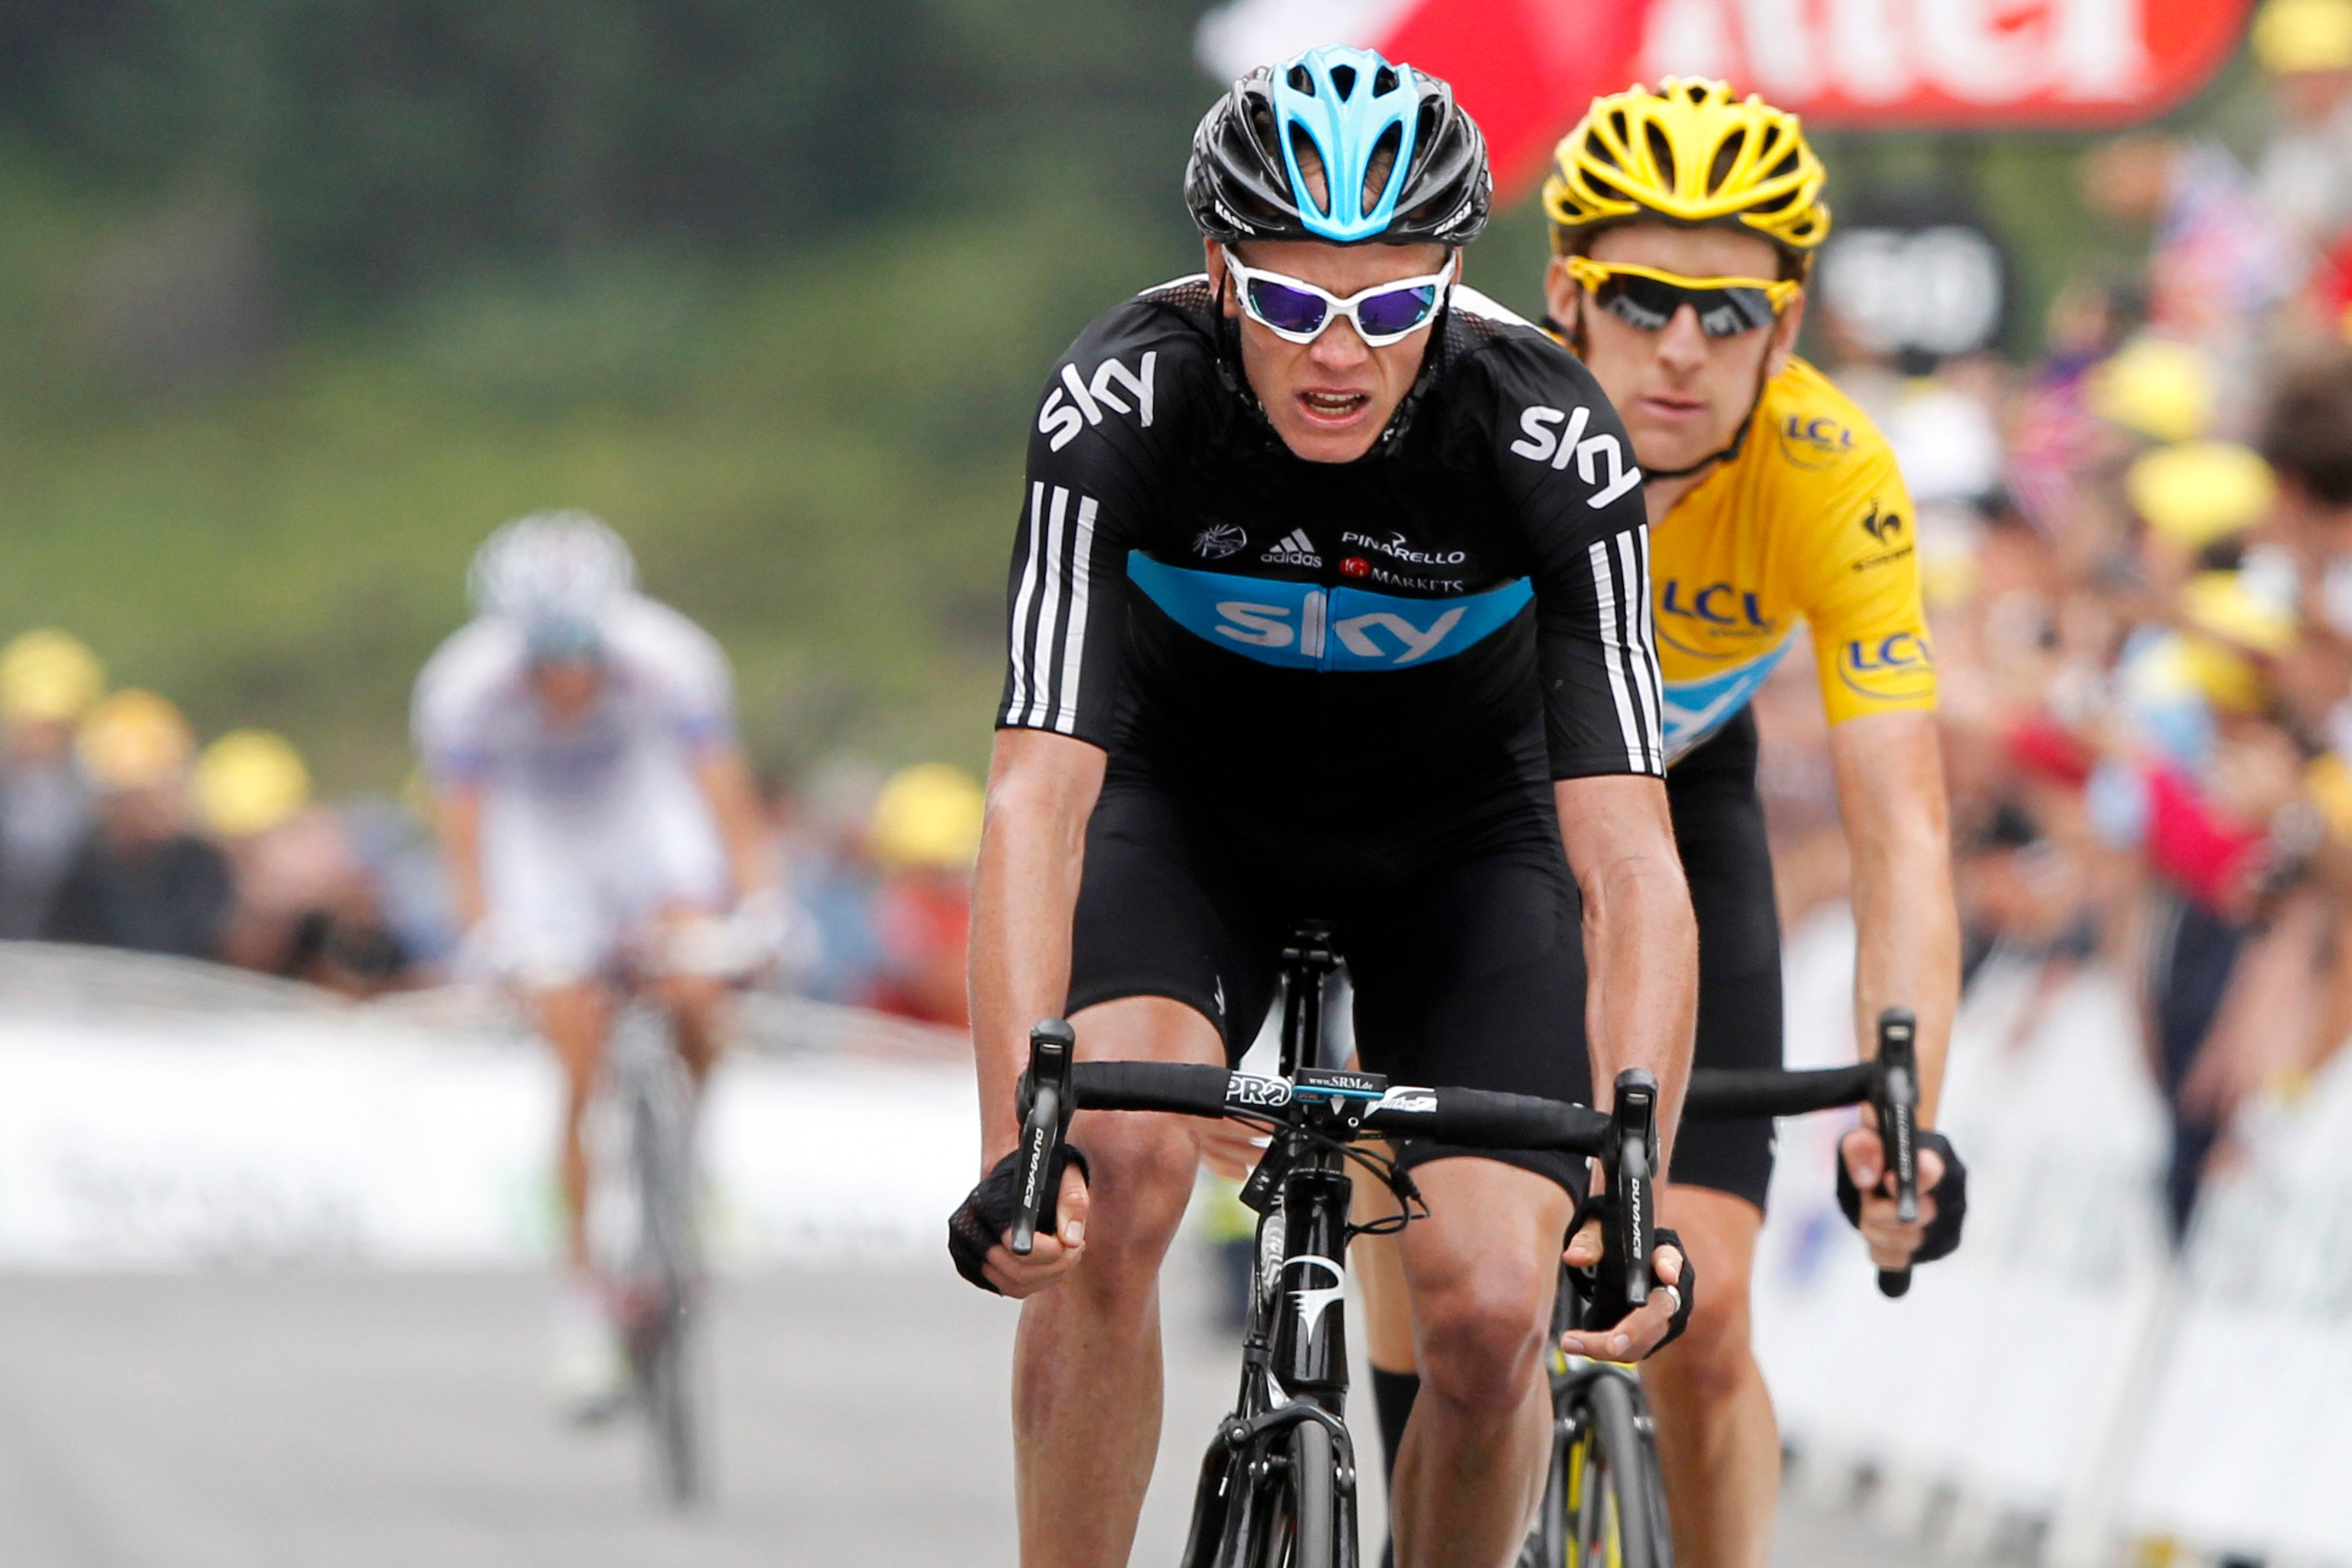 'I wouldn't put anything past Chris Froome'